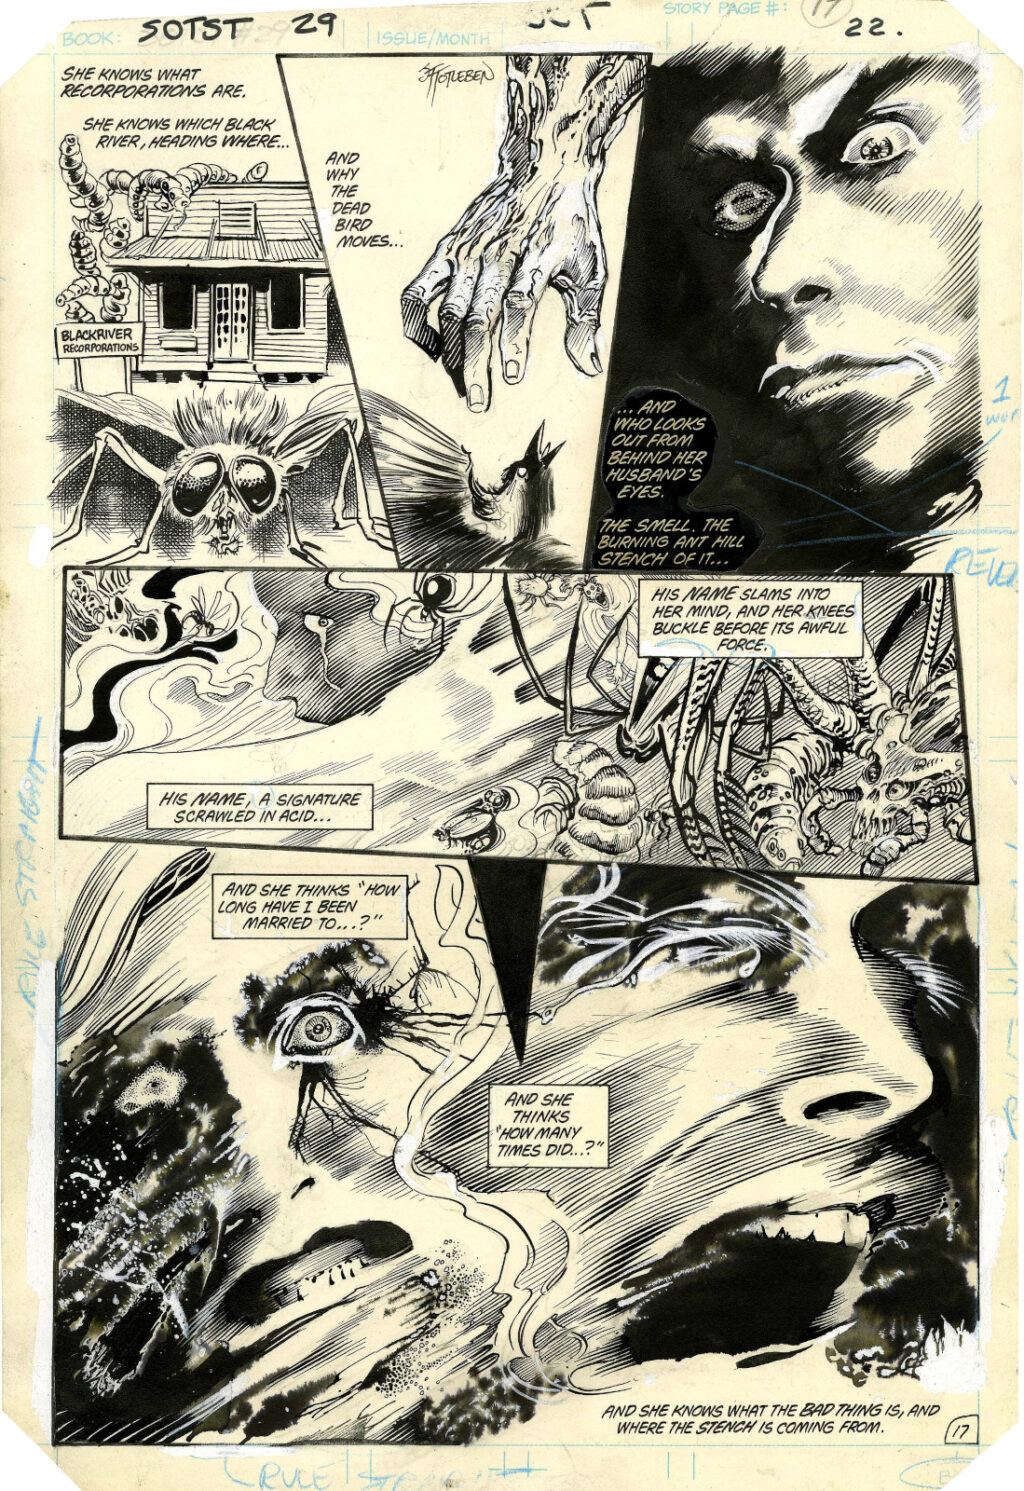 Saga of the Swamp Thing issue 29 page 17 by Stephen Bissette and John Totleben